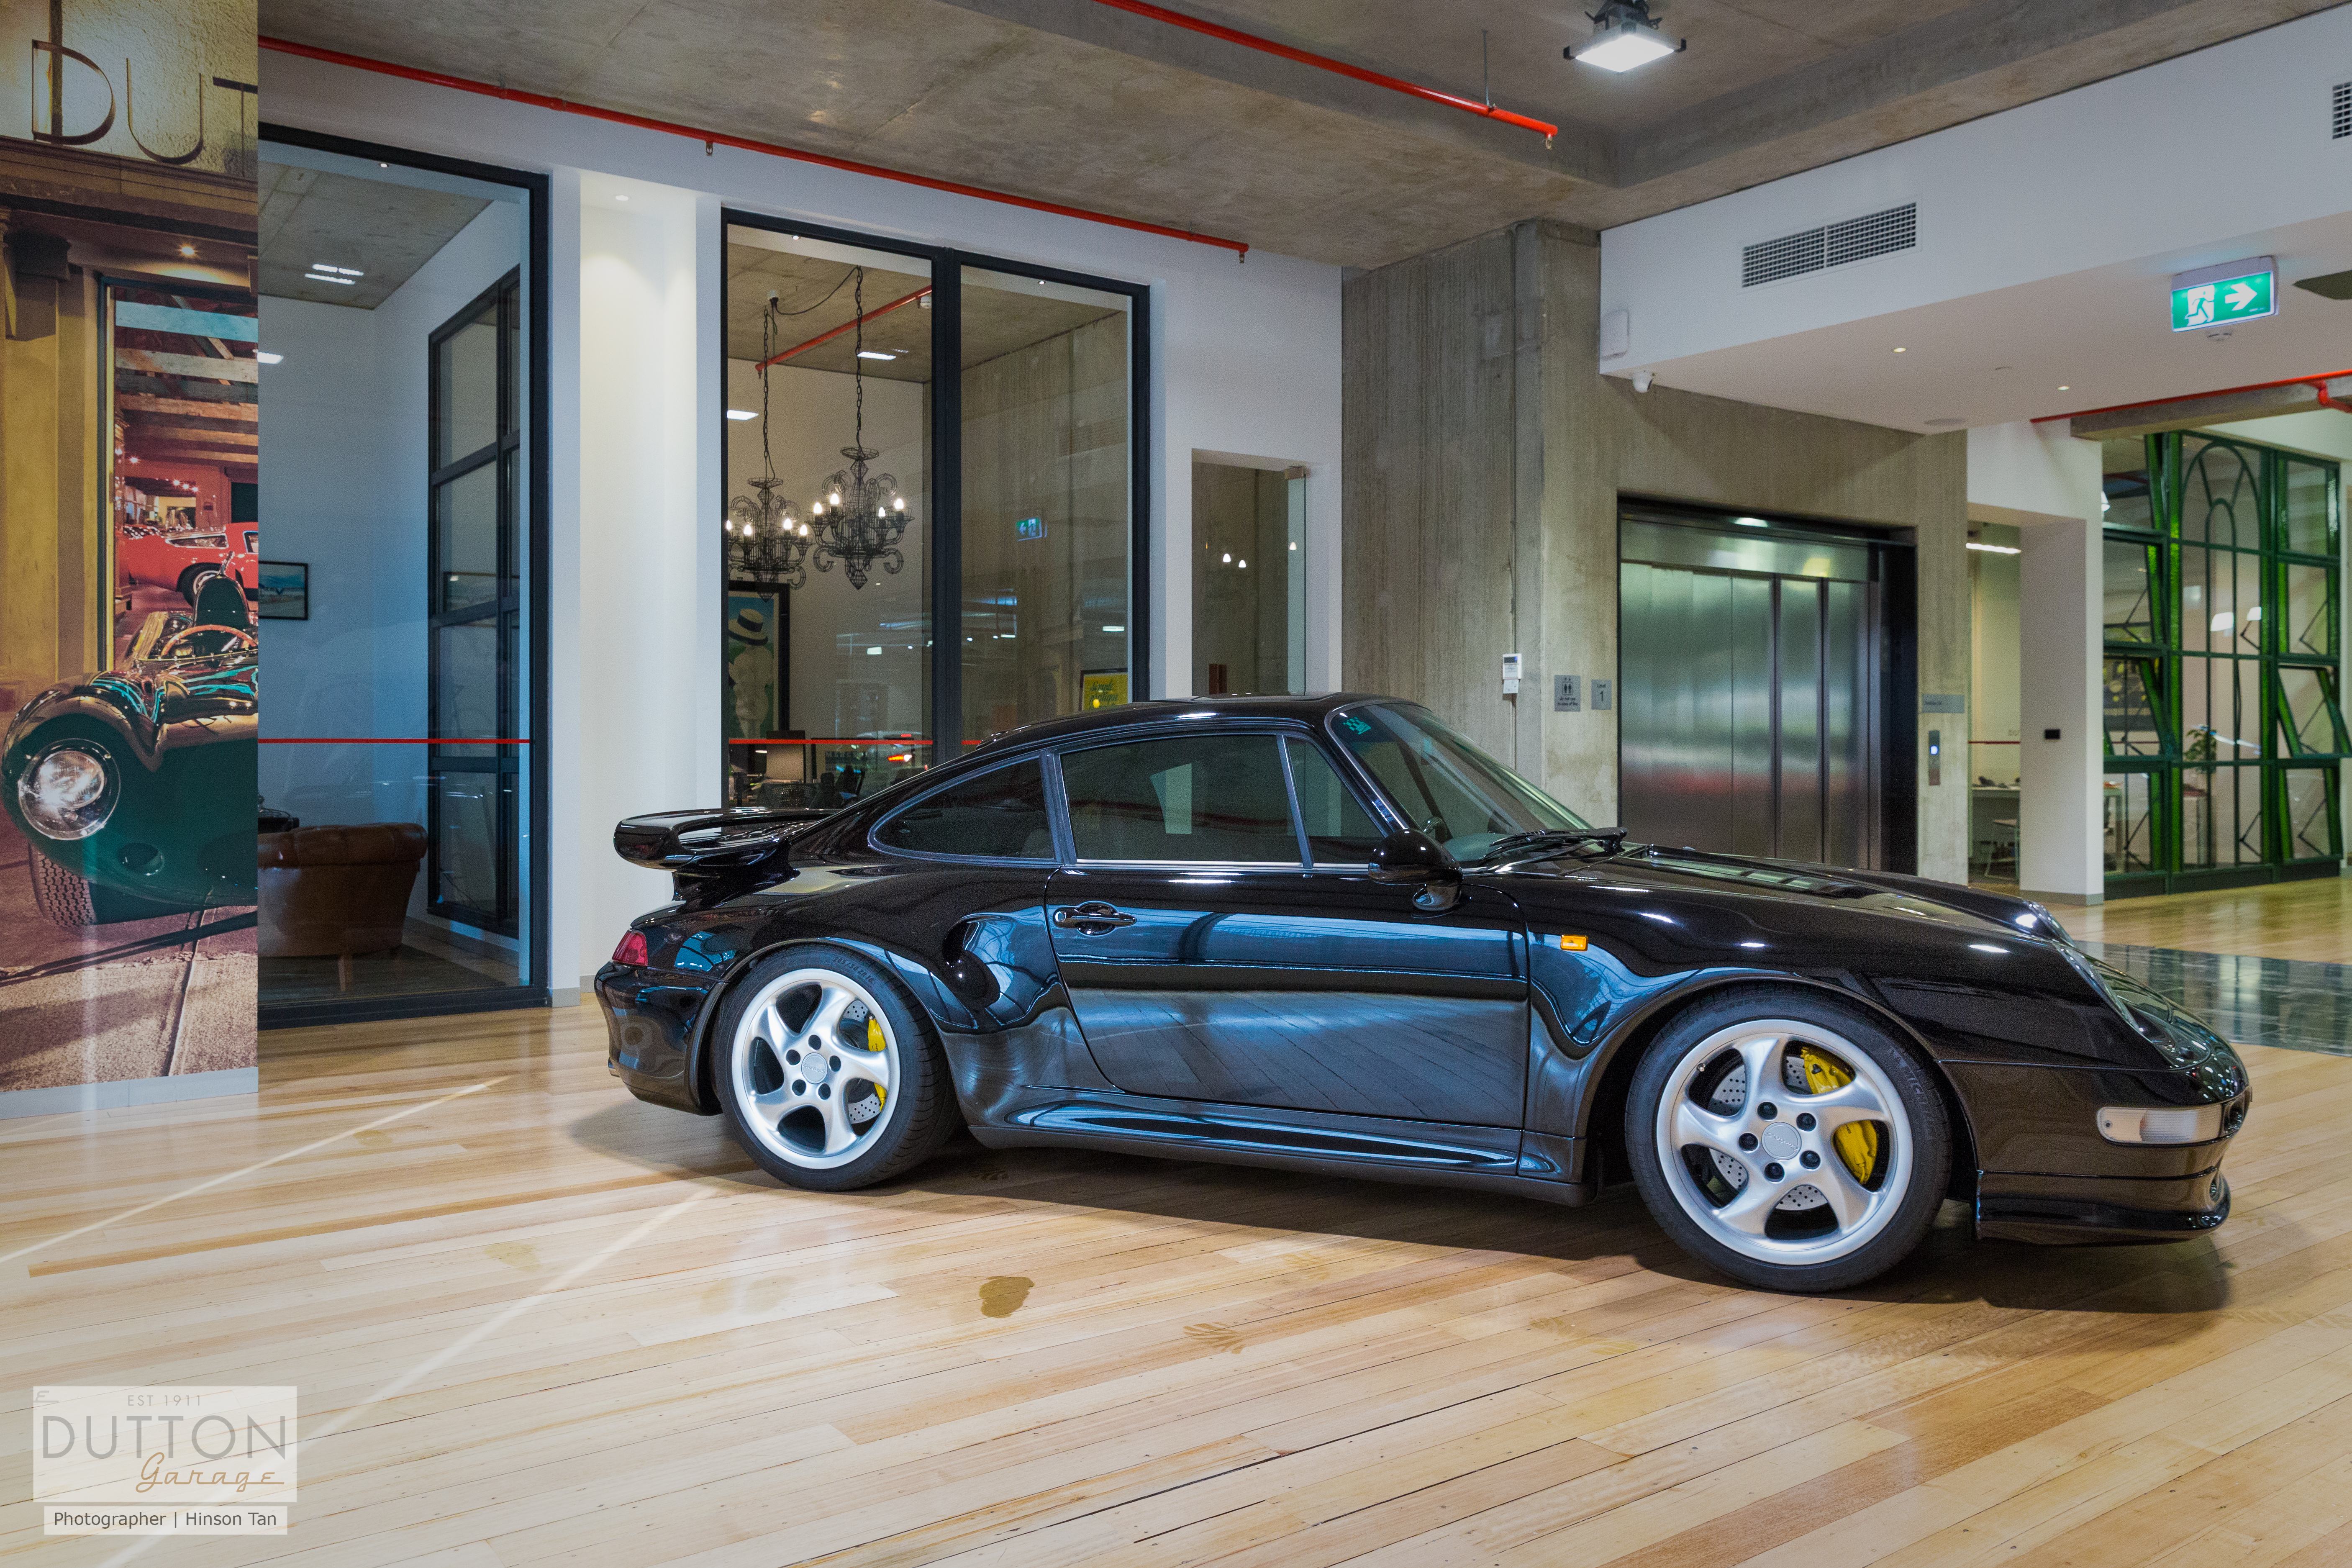 1998 Porsche  911 993 Turbo S- sold in Australia